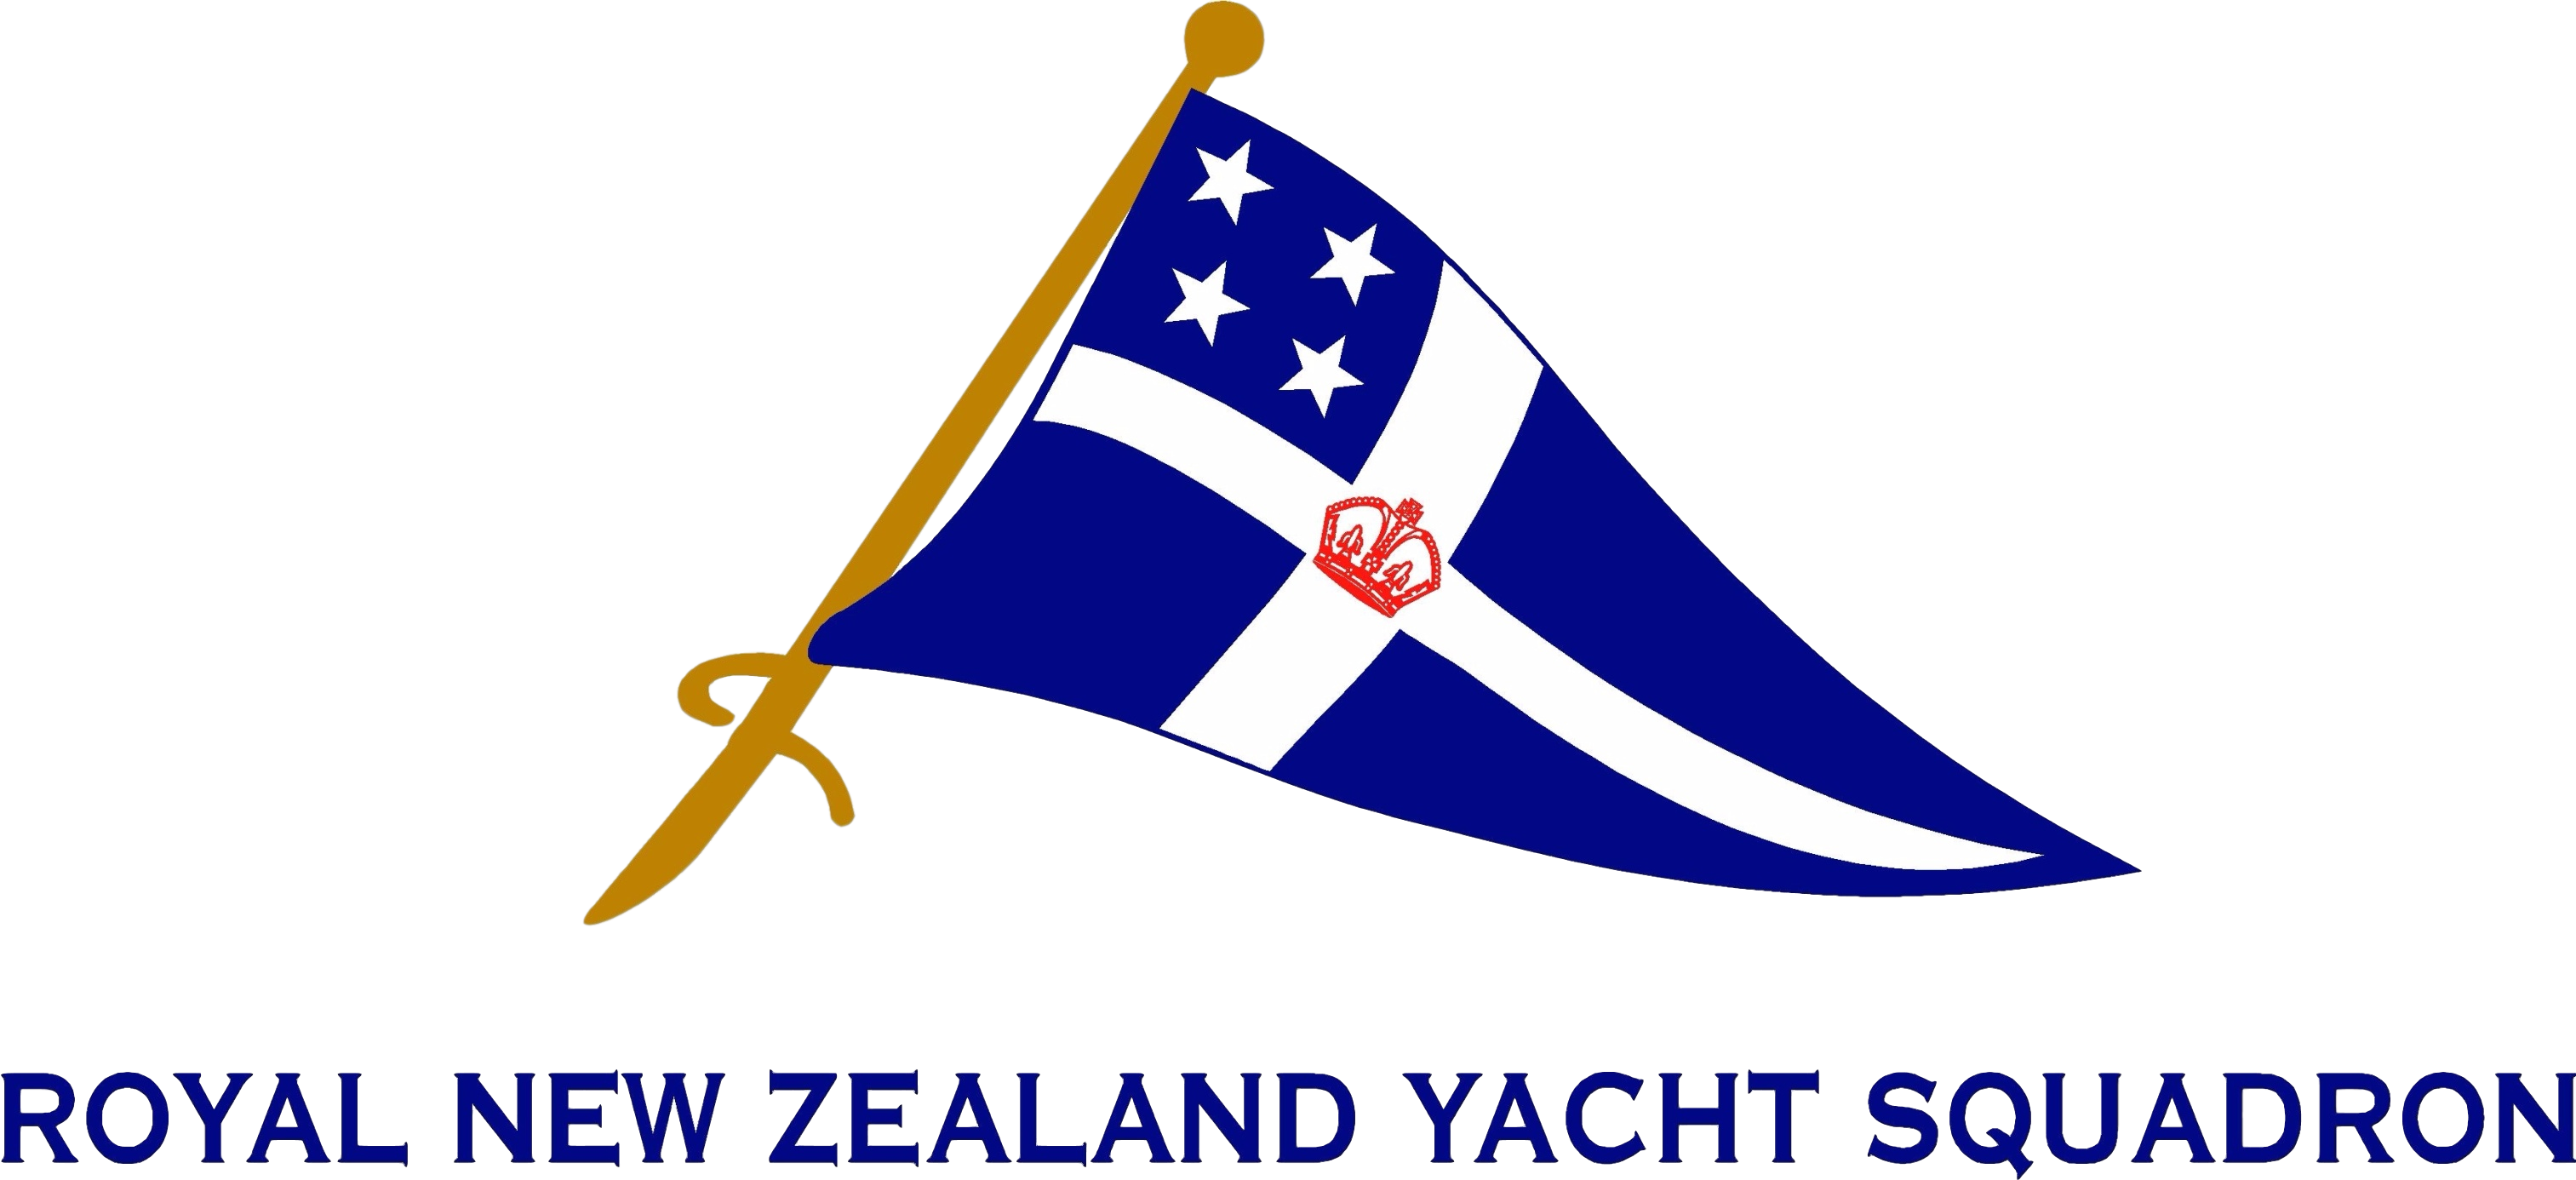 Royal New Zealand Yacht Club